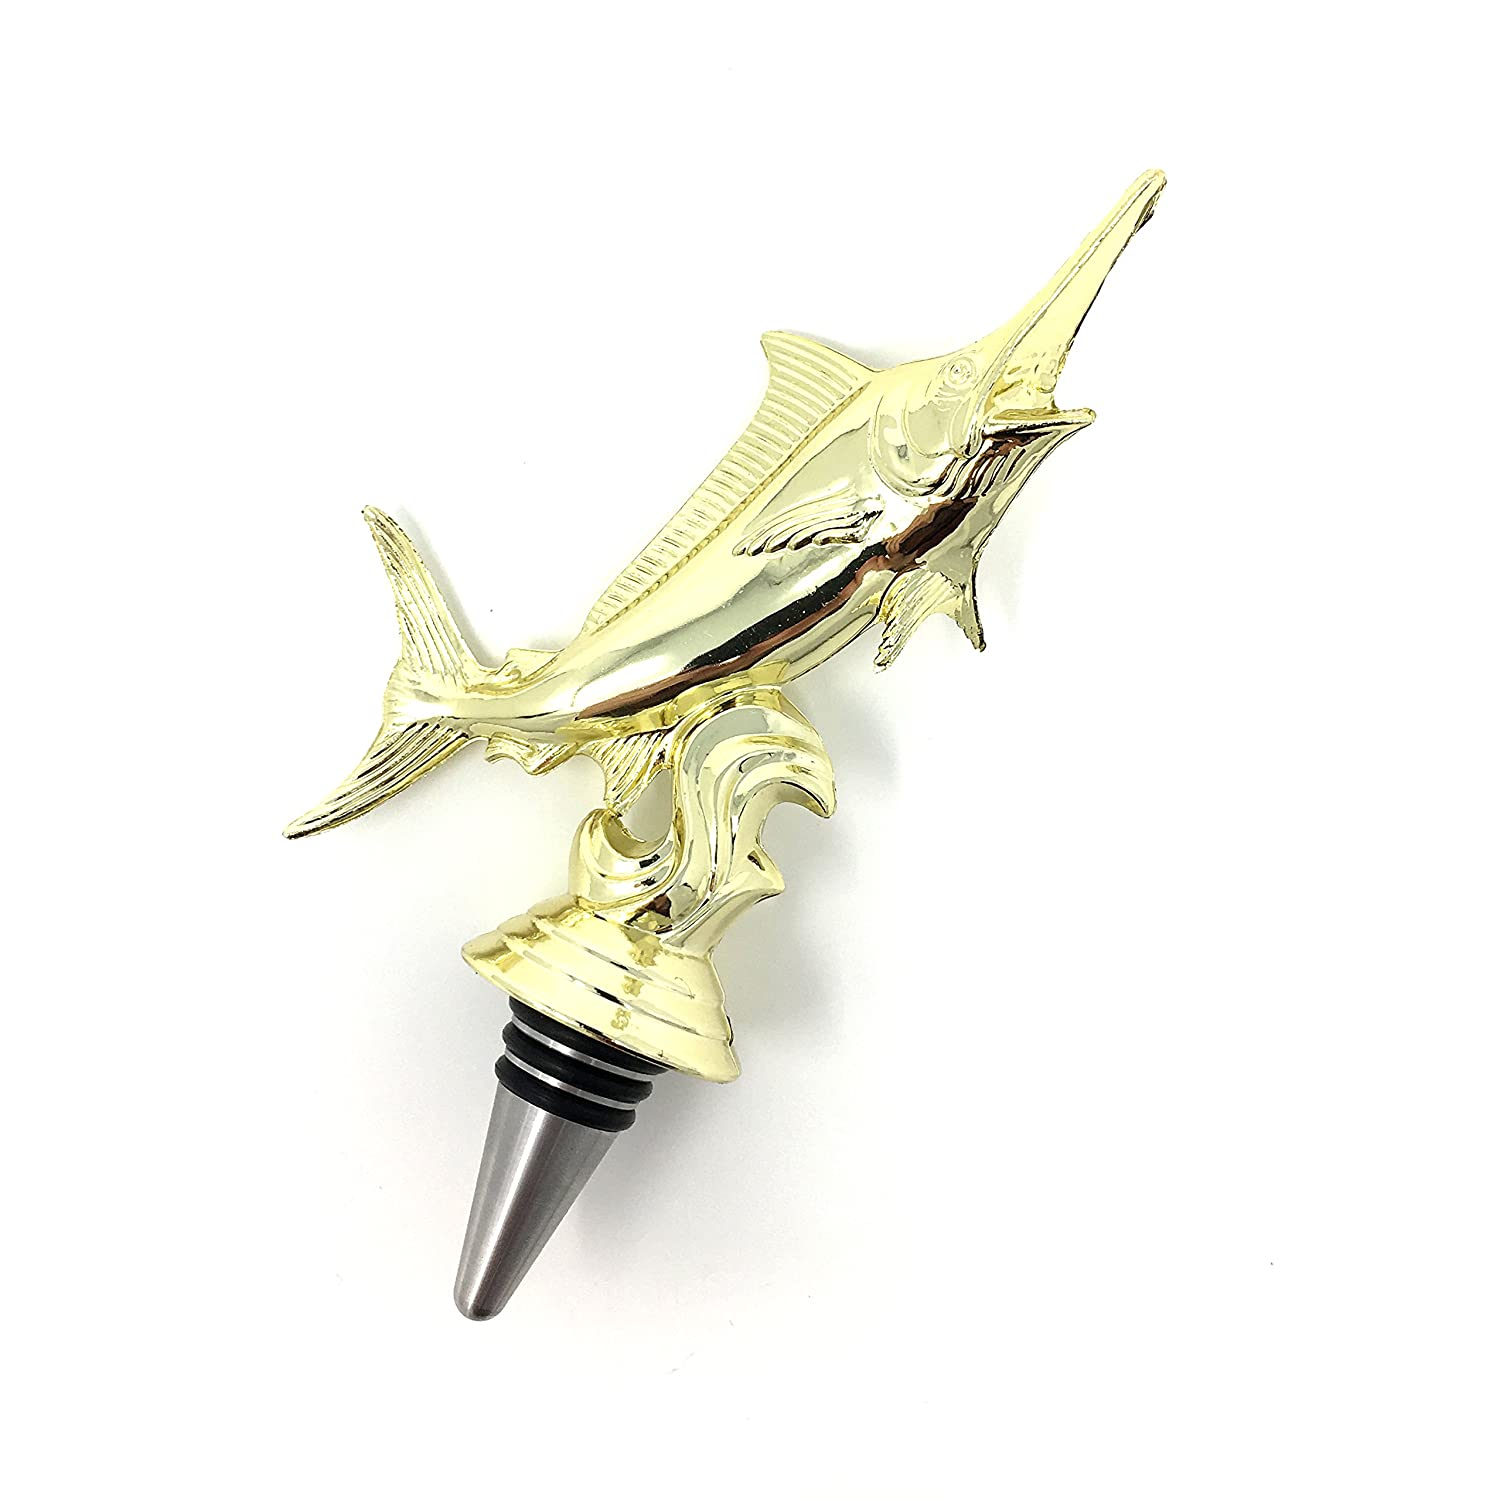 Marlin Wine Bottle Stopper - Handmade with Stainless Steel Base and Repurposed Trophy Top